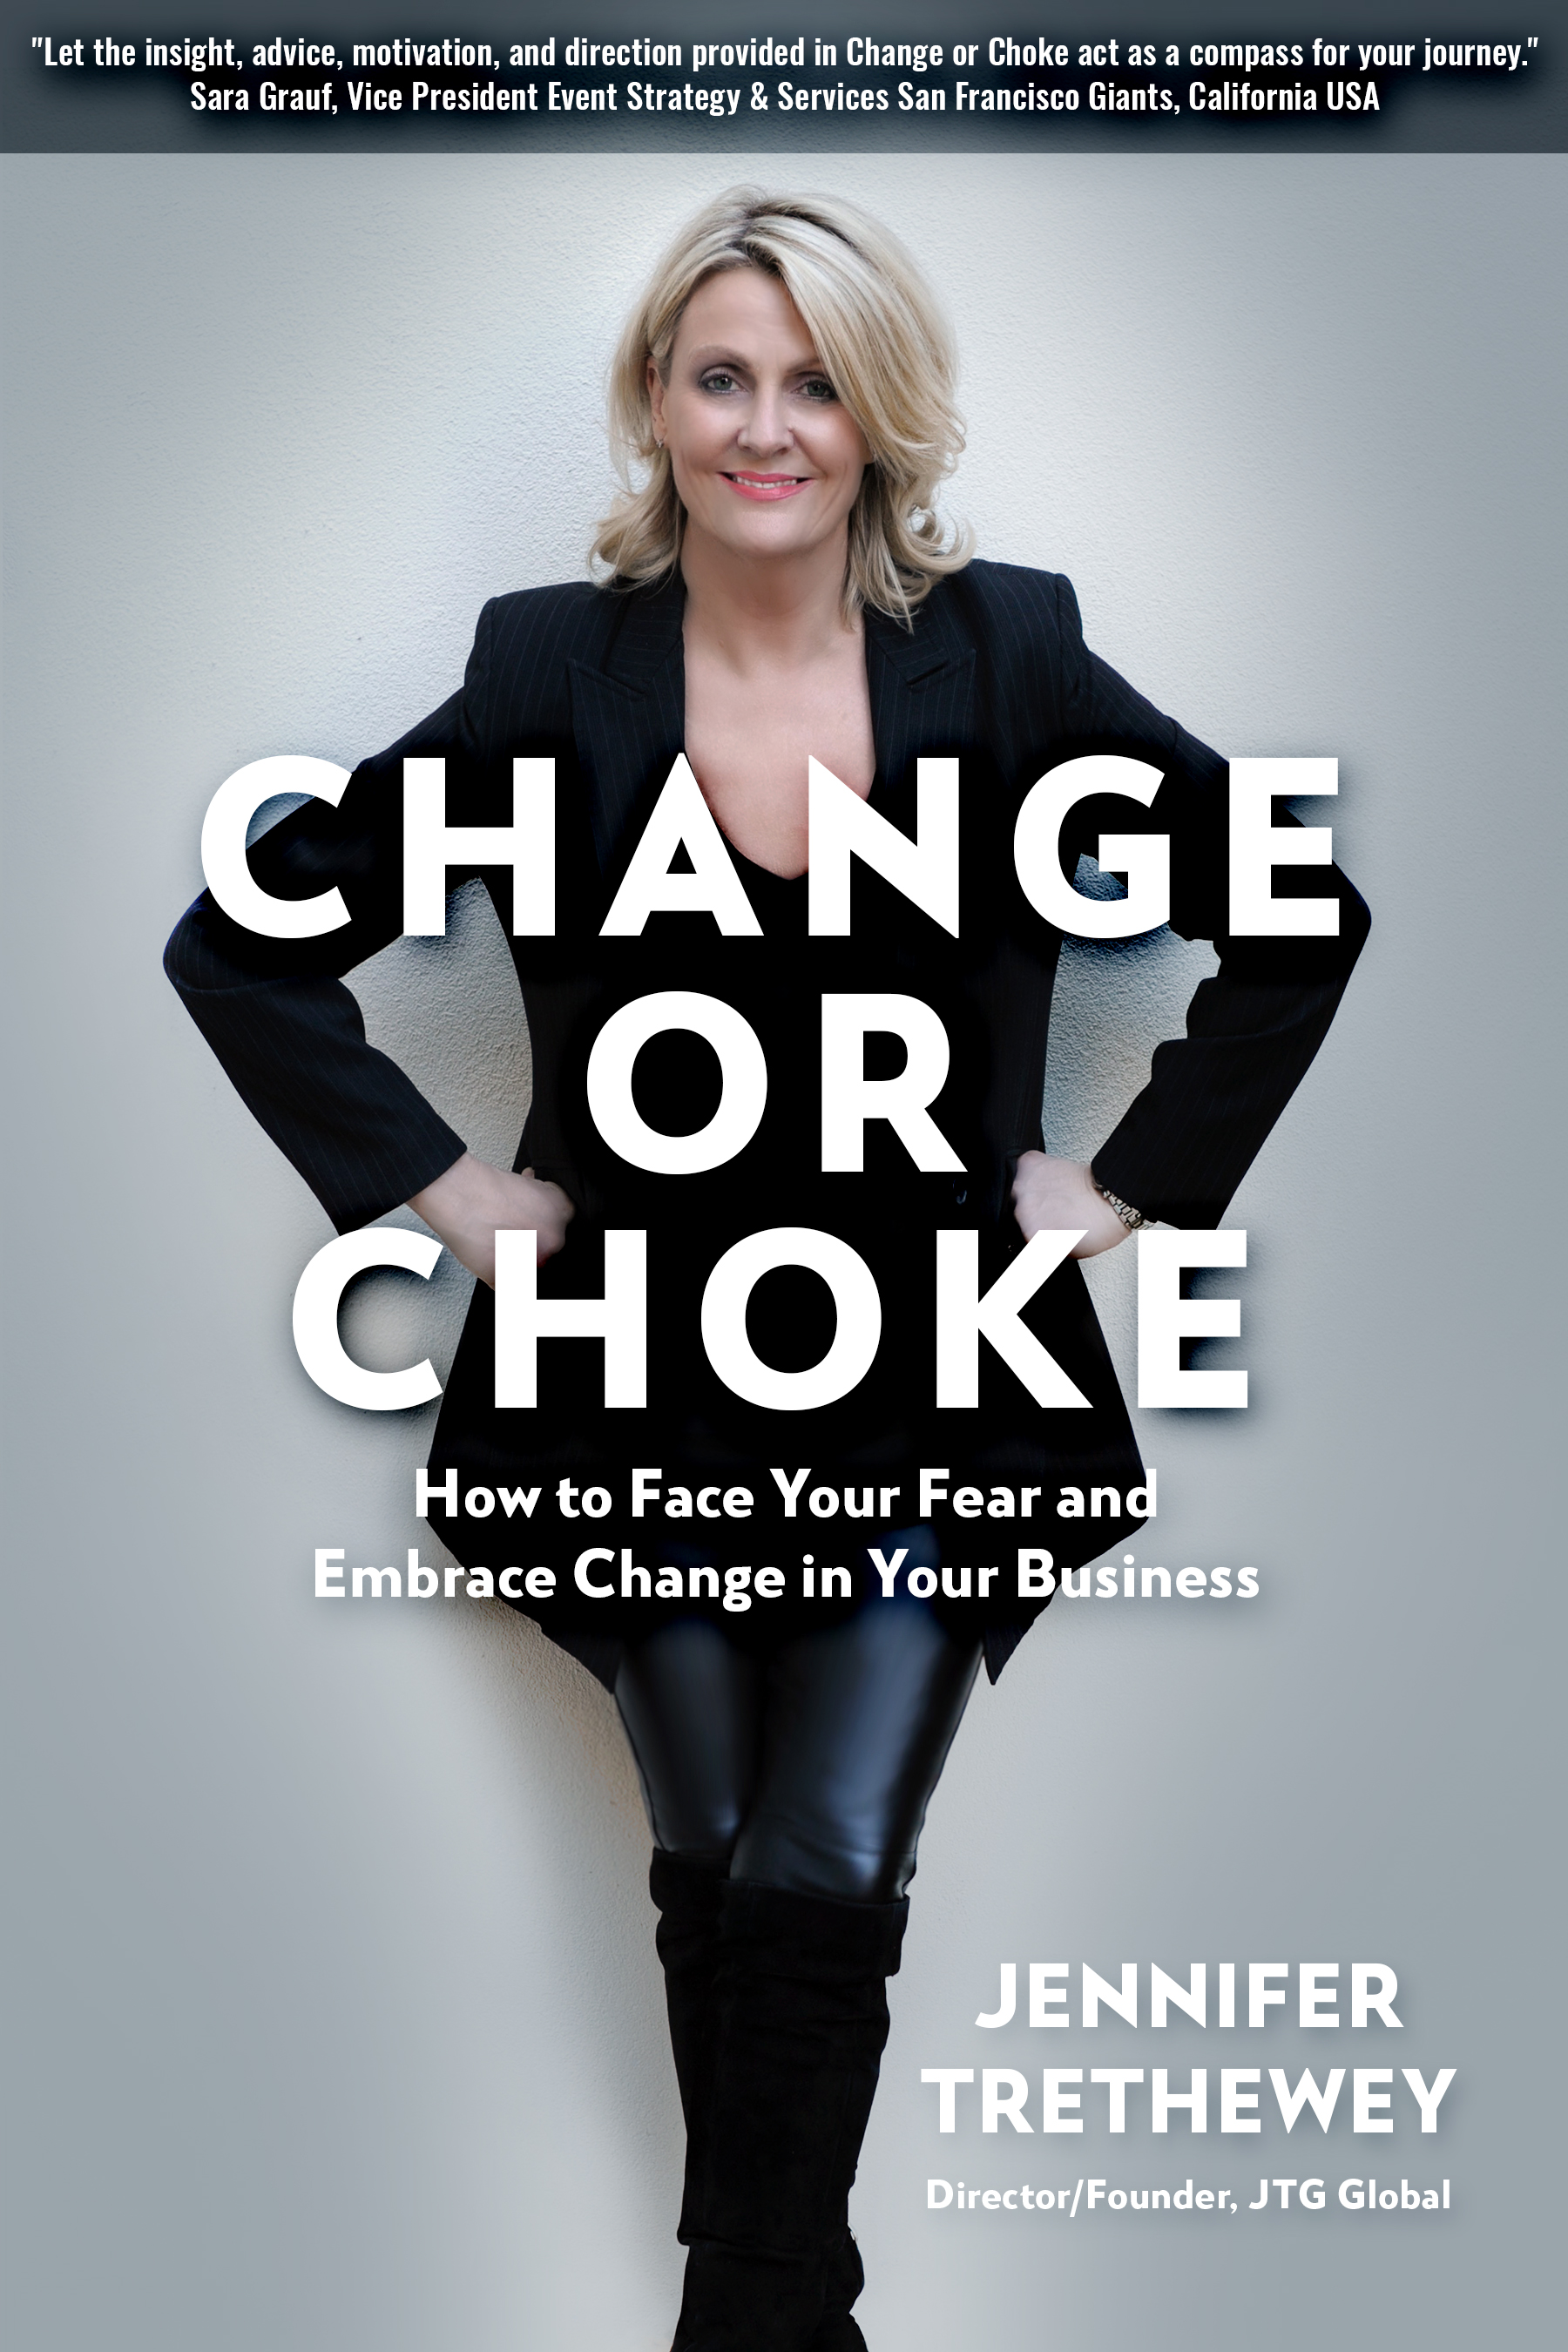 ChangeorChoke-front-cover-rev-Jan-16.jpg